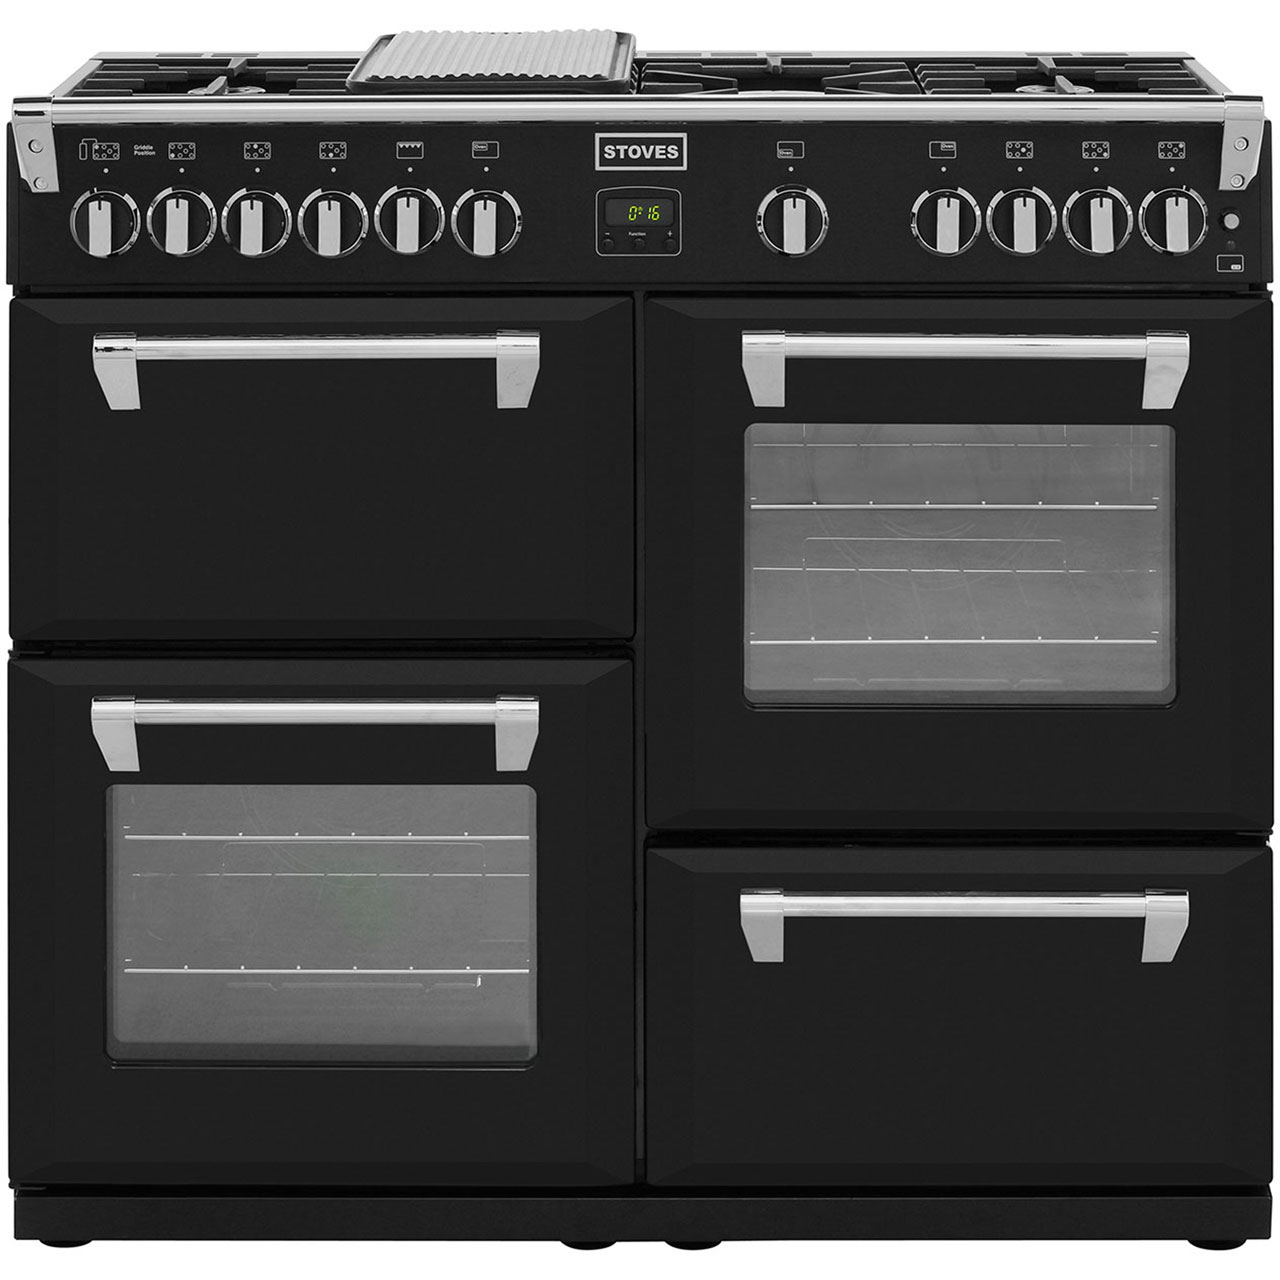 Stoves RICHMOND1000GT 100cm Gas Range Cooker with Electric Grill - Black